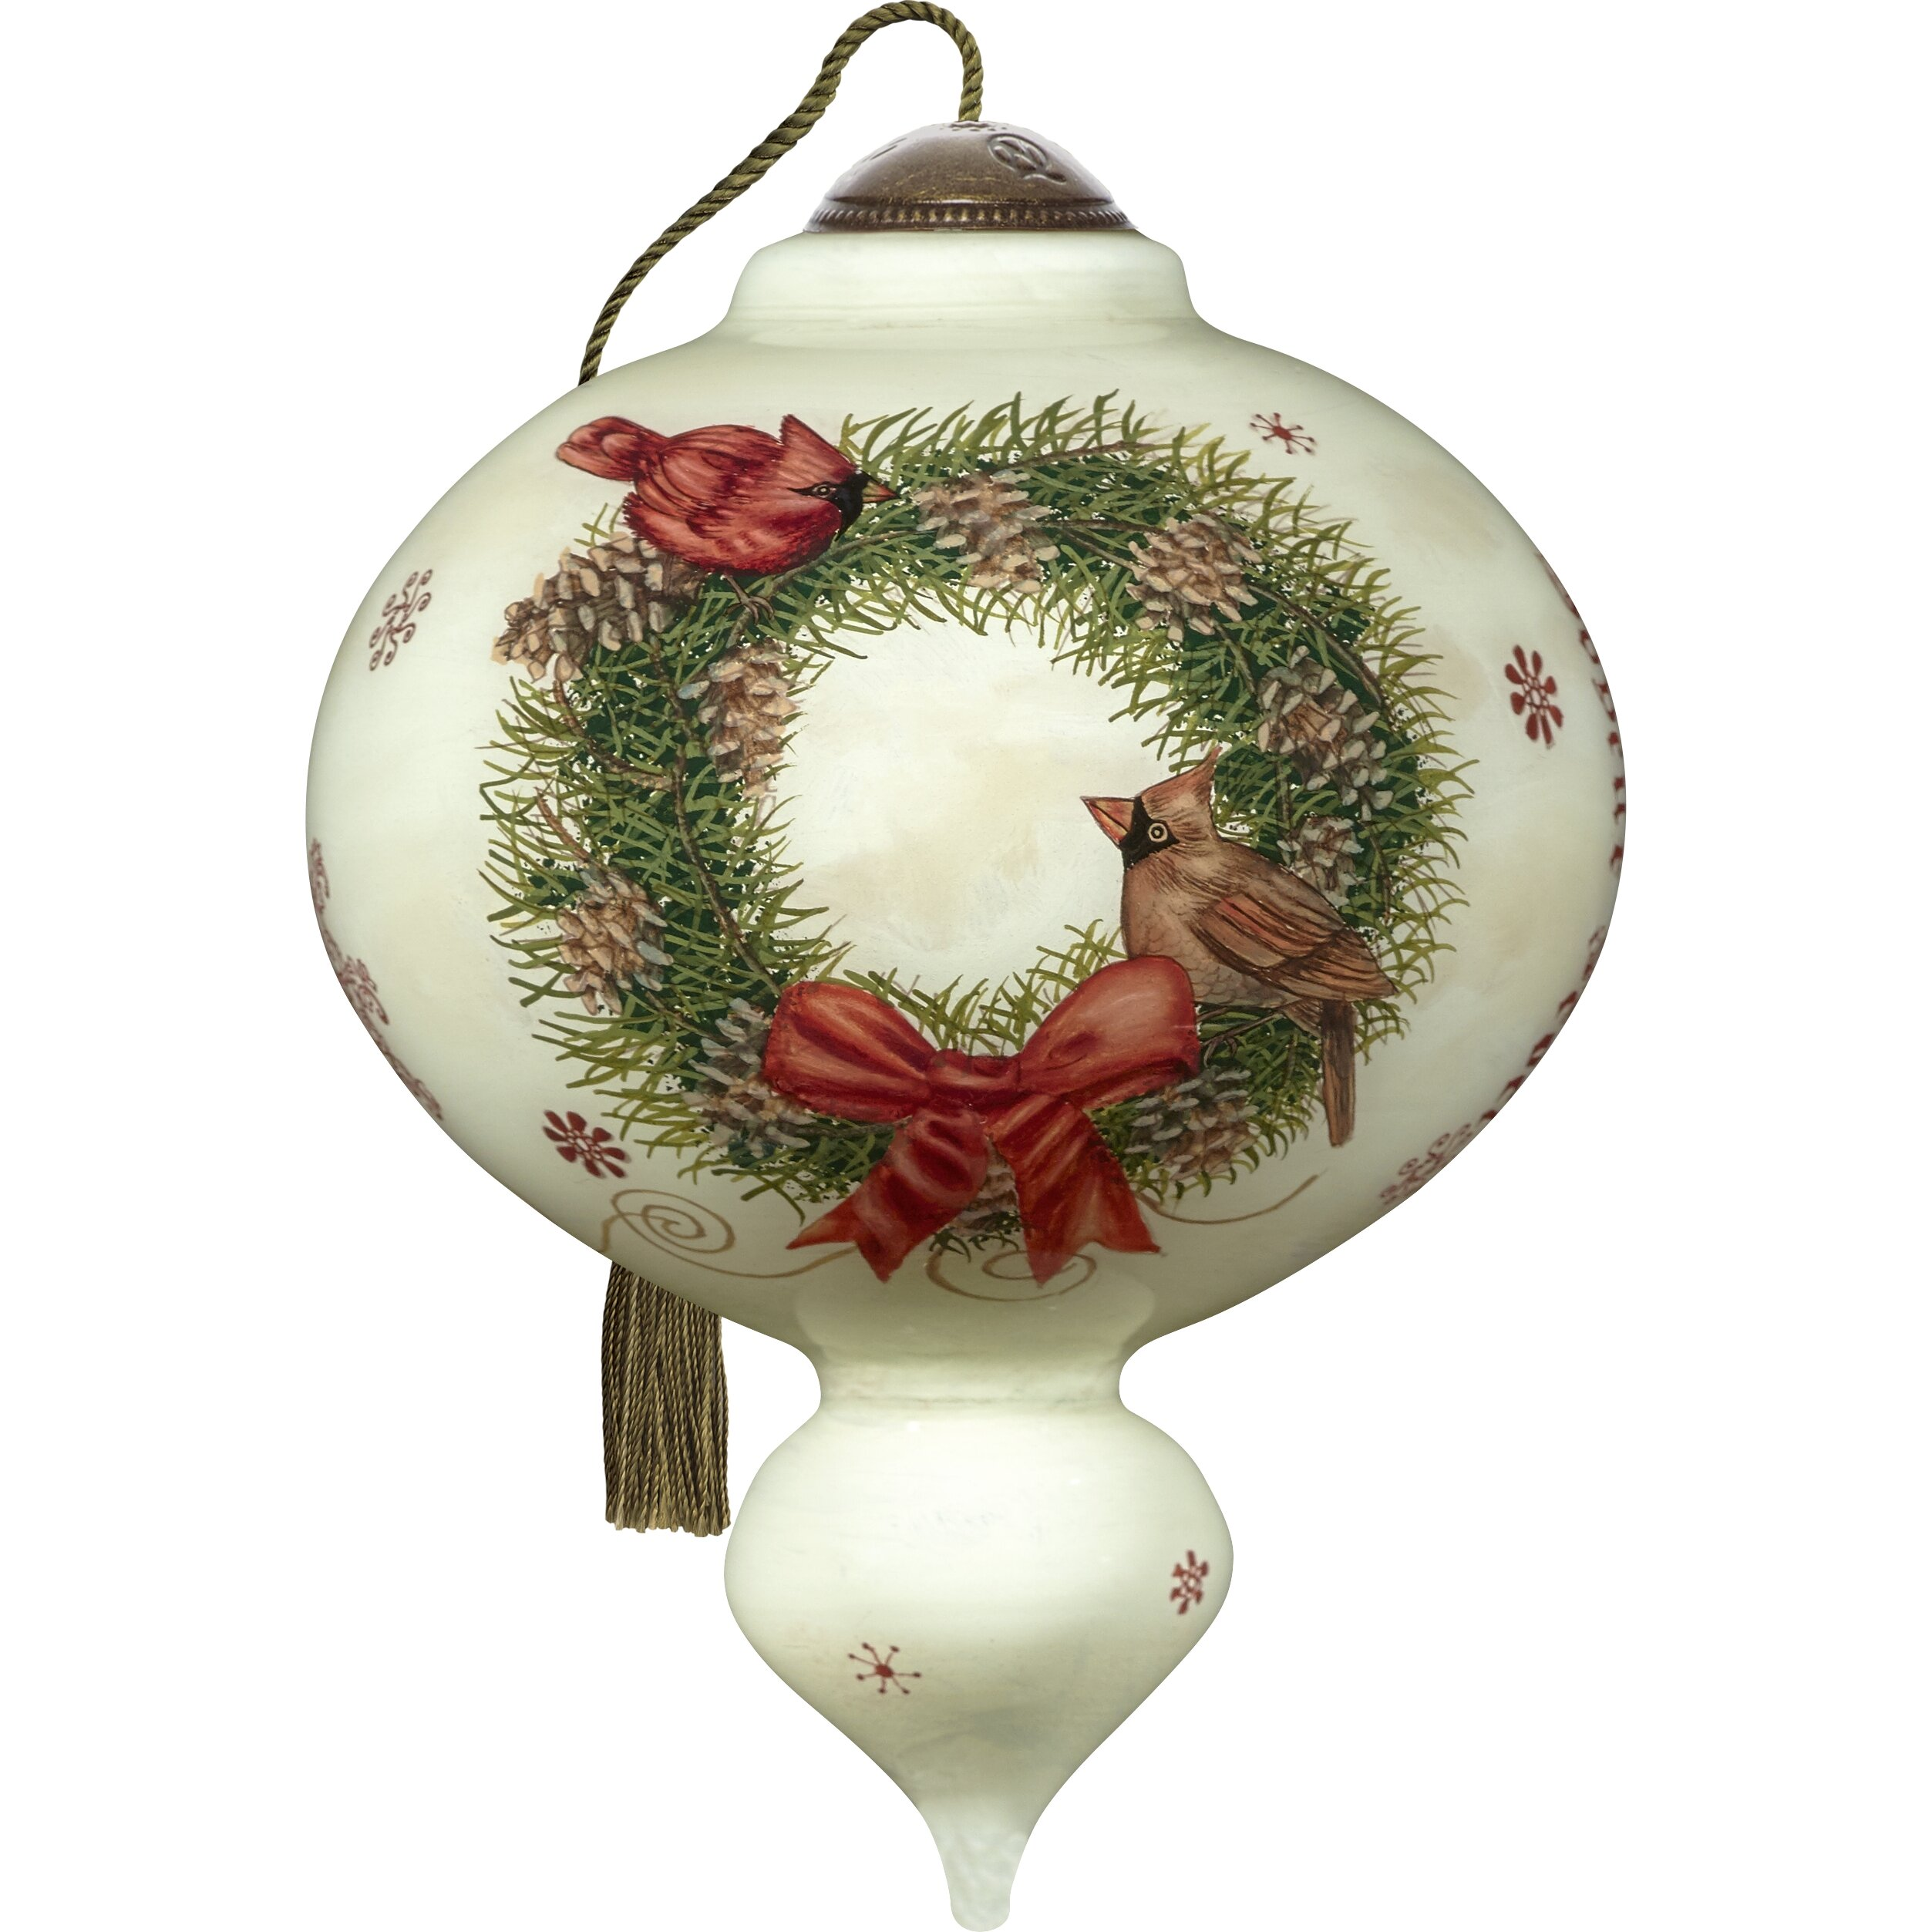 Precious Moments Ne Qwa Art Joyeux Noel With Christmas Wreath Standard Hand Painted Blown Glass Christmas Holiday Shaped Ornament Wayfair